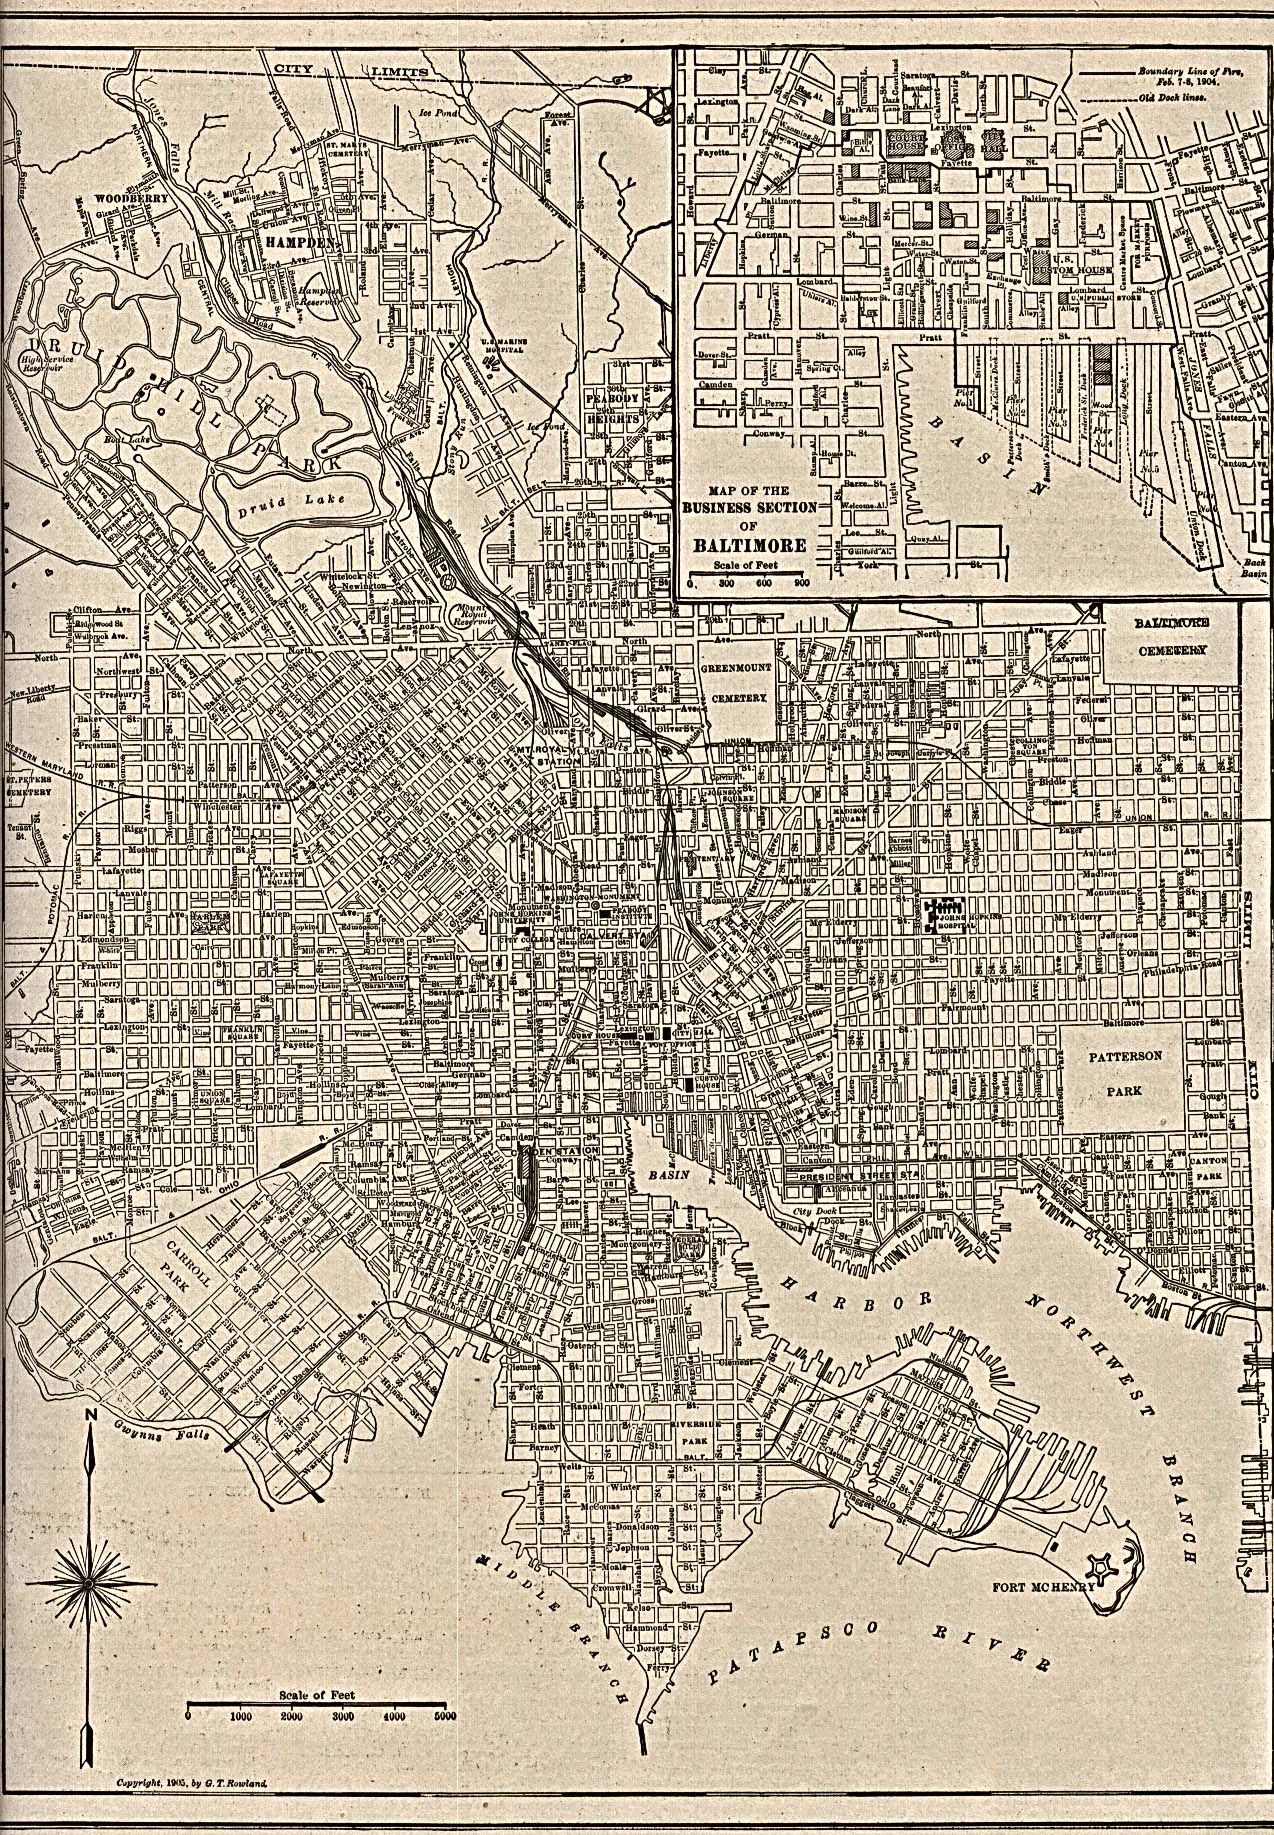 Baltimore, MD, ca. 1905 | Maps | Baltimore map, City maps, Map on map of dc and baltimore, map of dc metro area, map of virginia and washington dc, baltimore maryland area, map of washington dc and surrounding states, map of virginia dc area, map of delaware and baltimore, map of states bordering virginia, map of baltimore's inner harbor, map of baltimore airport area, greater baltimore area, map of seattle area, map of baltimore metro area, map of washington metropolitan area, map of towson md, map of capitol hill washington dc area, map of annapolis md area, map of rockville md, map of pikesville md, map of 21202,